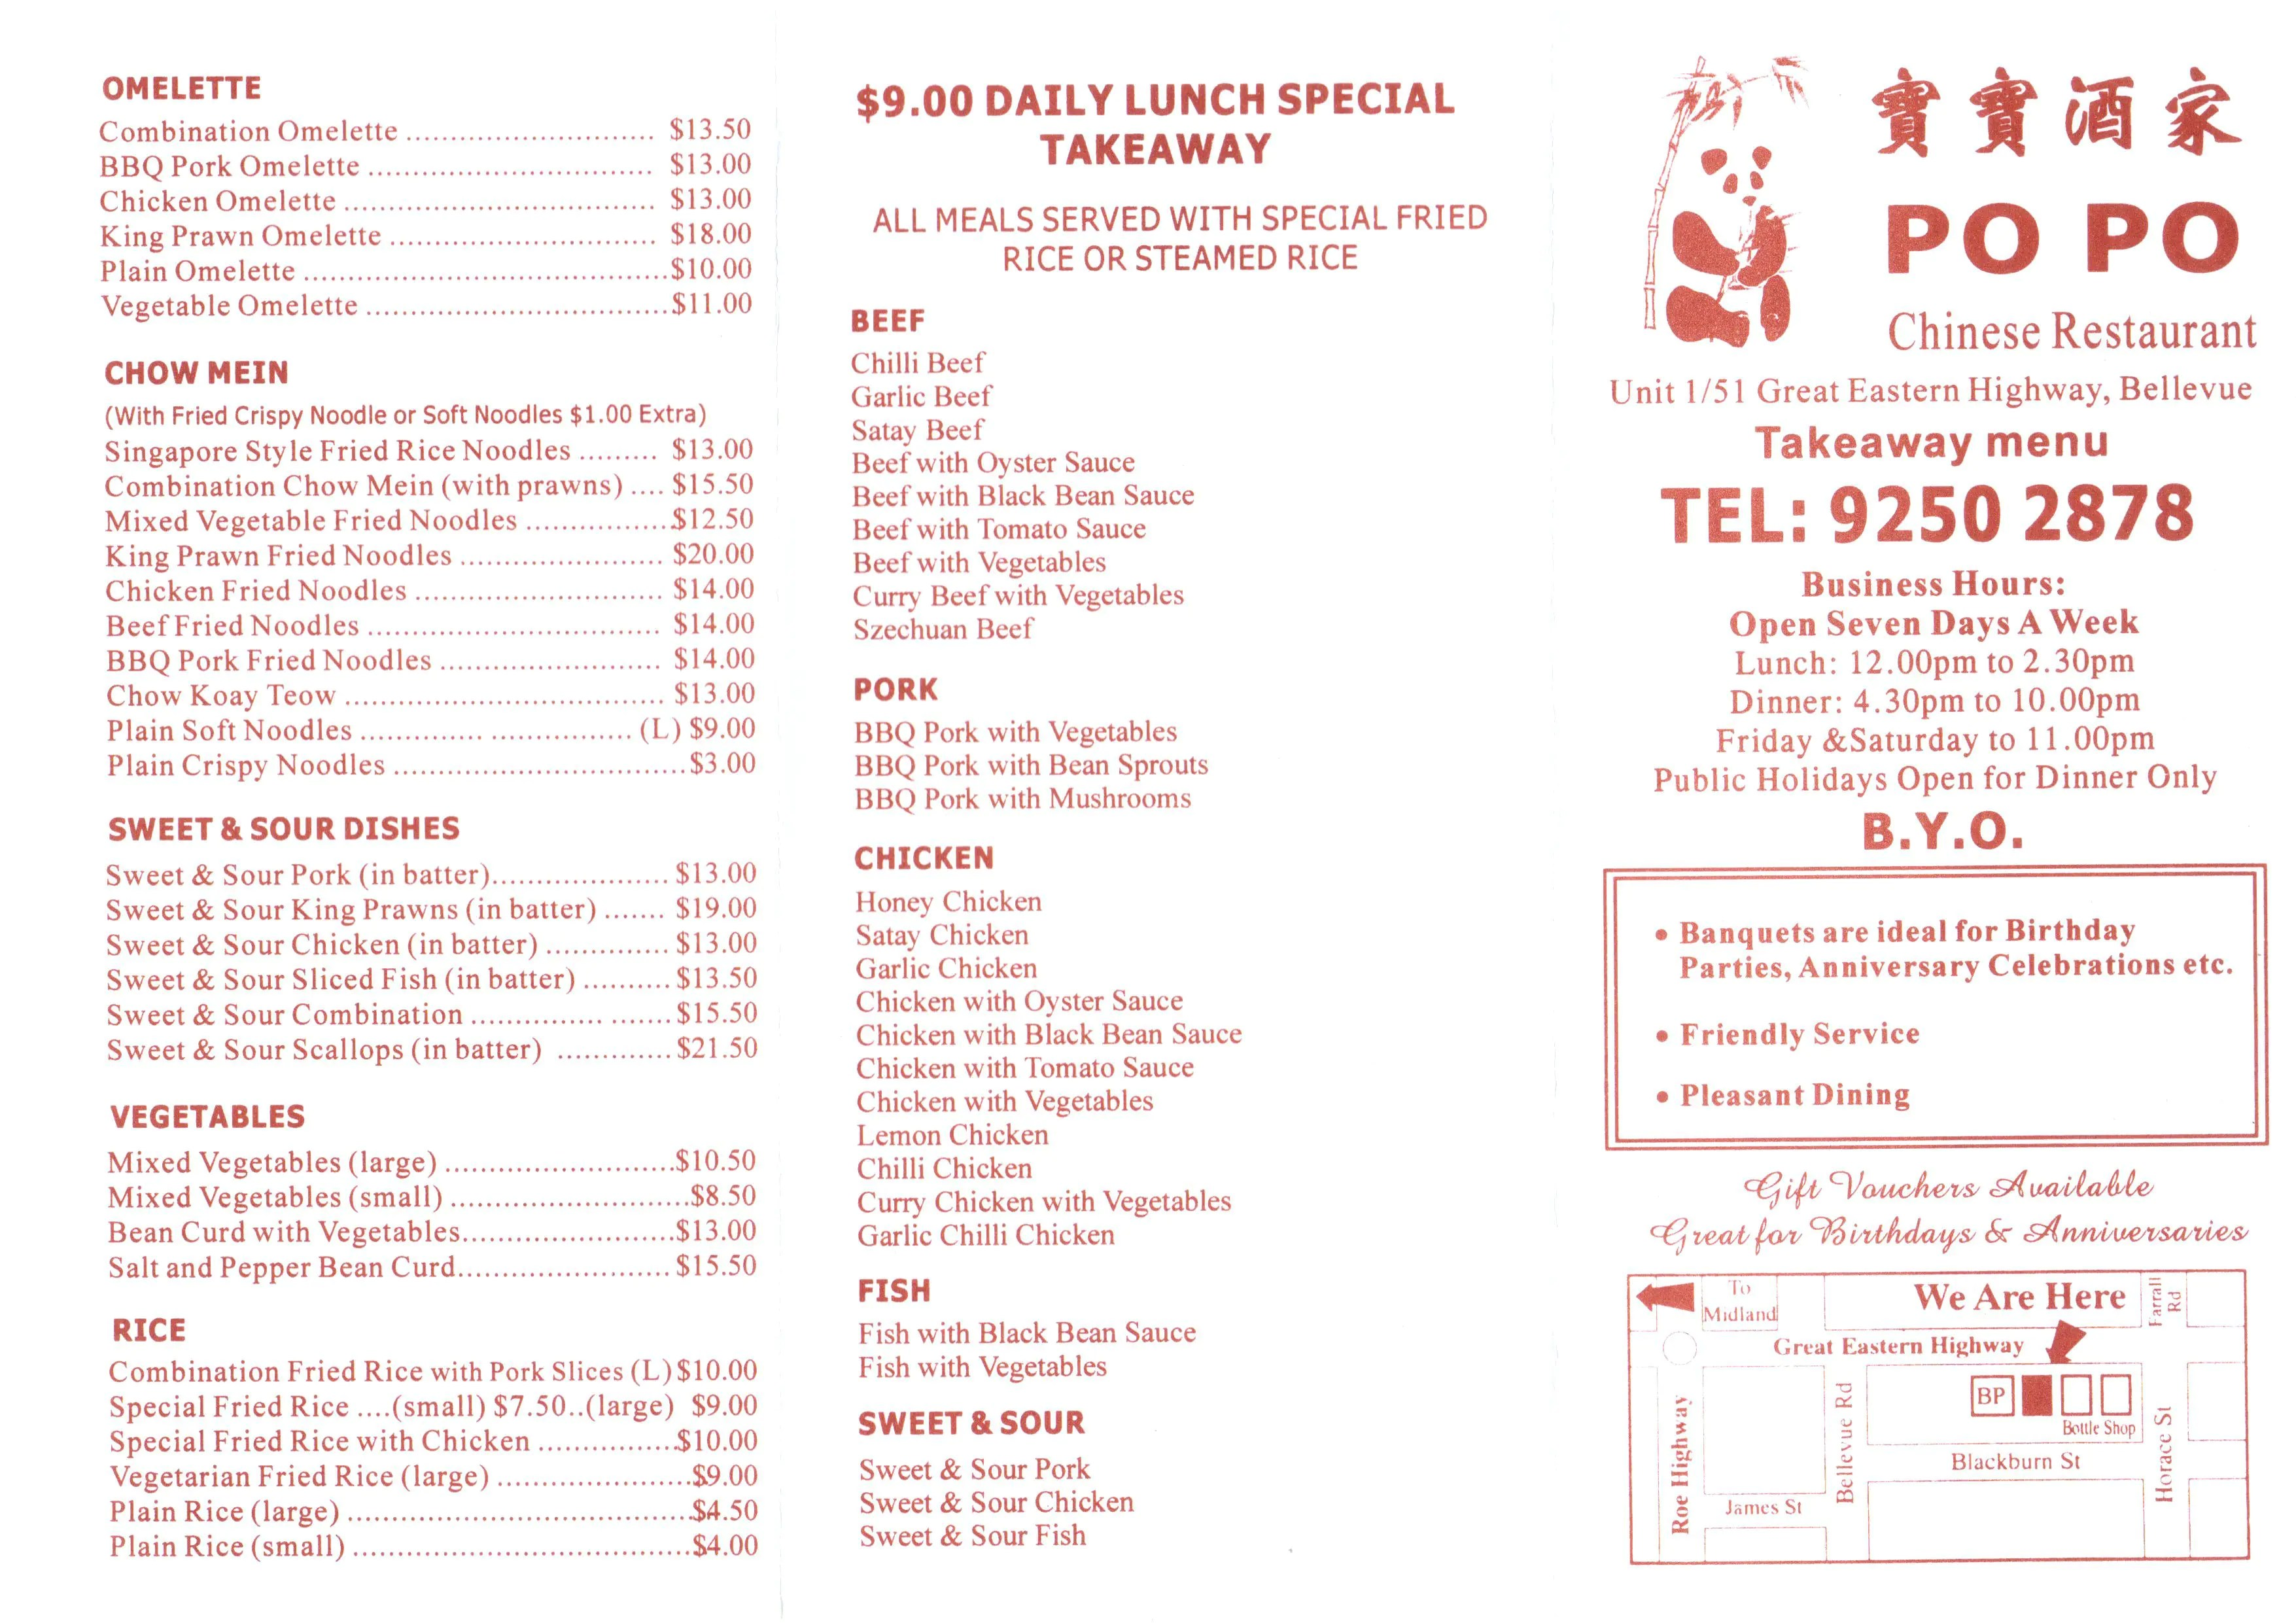 Breakfast Delivery Perth Po Po Chinese Restaurant Menu Menu For Po Po Chinese Restaurant